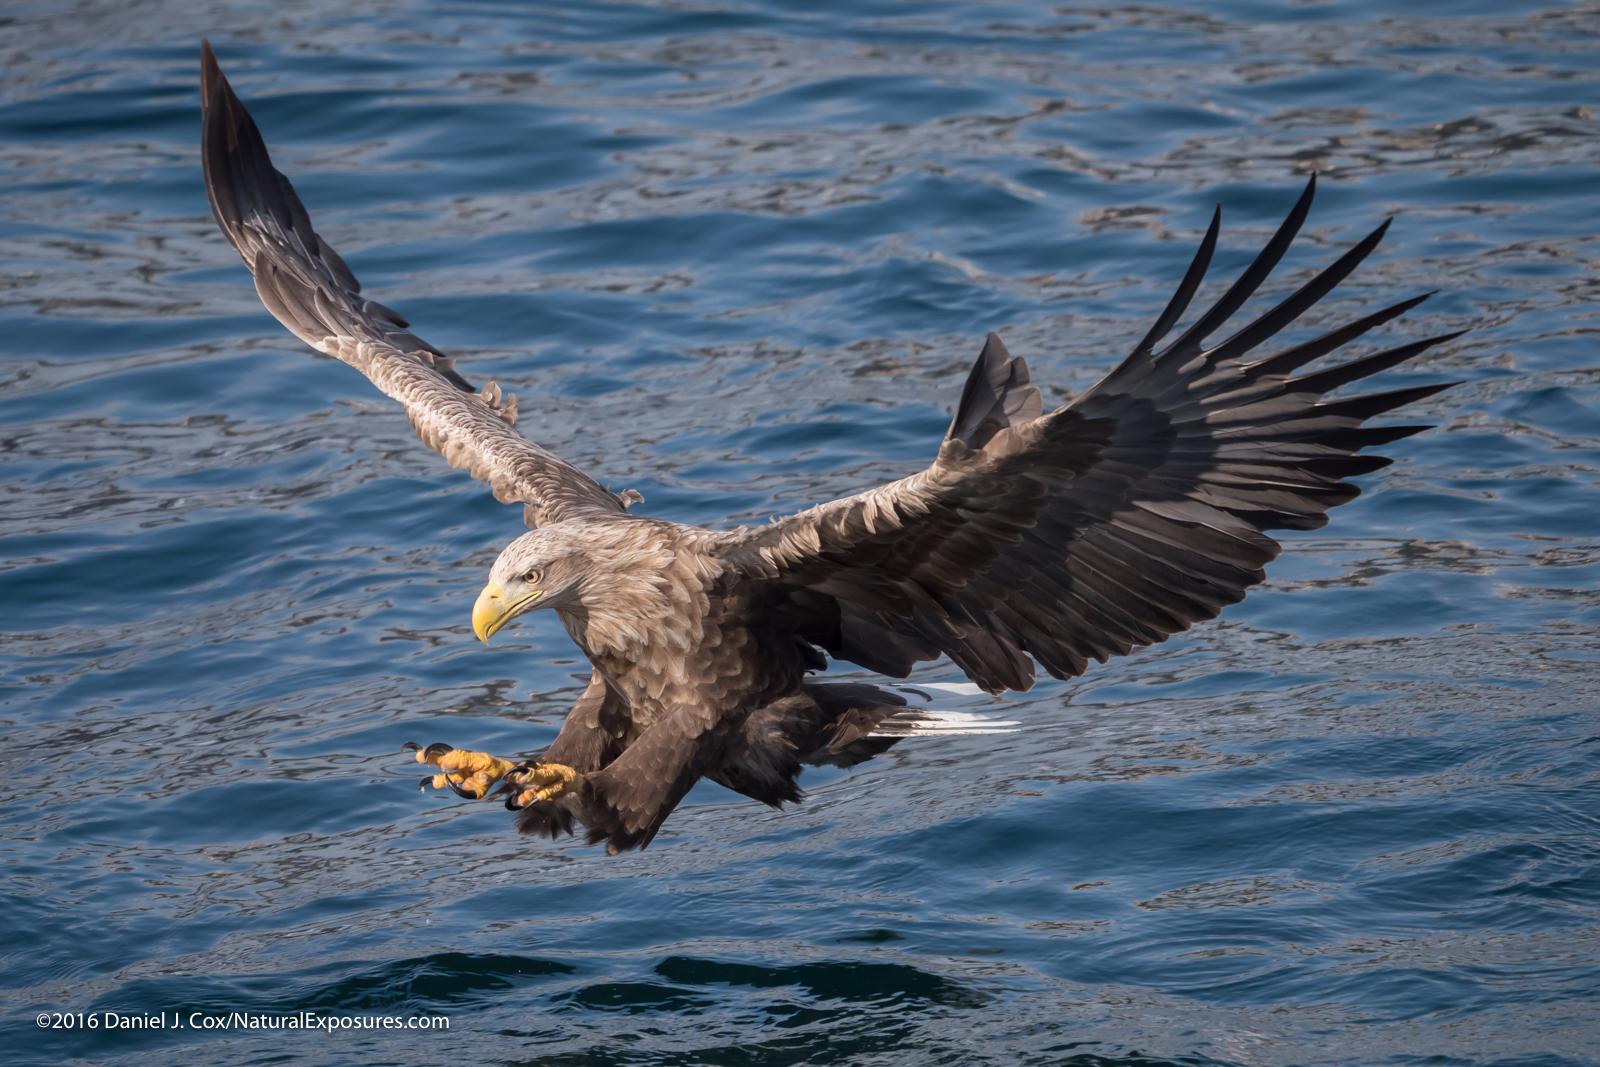 White-tailed eagle in flight, Hokkaido, Japan. Lumix GX8 with Leica 100-400mm zoom ISO 640